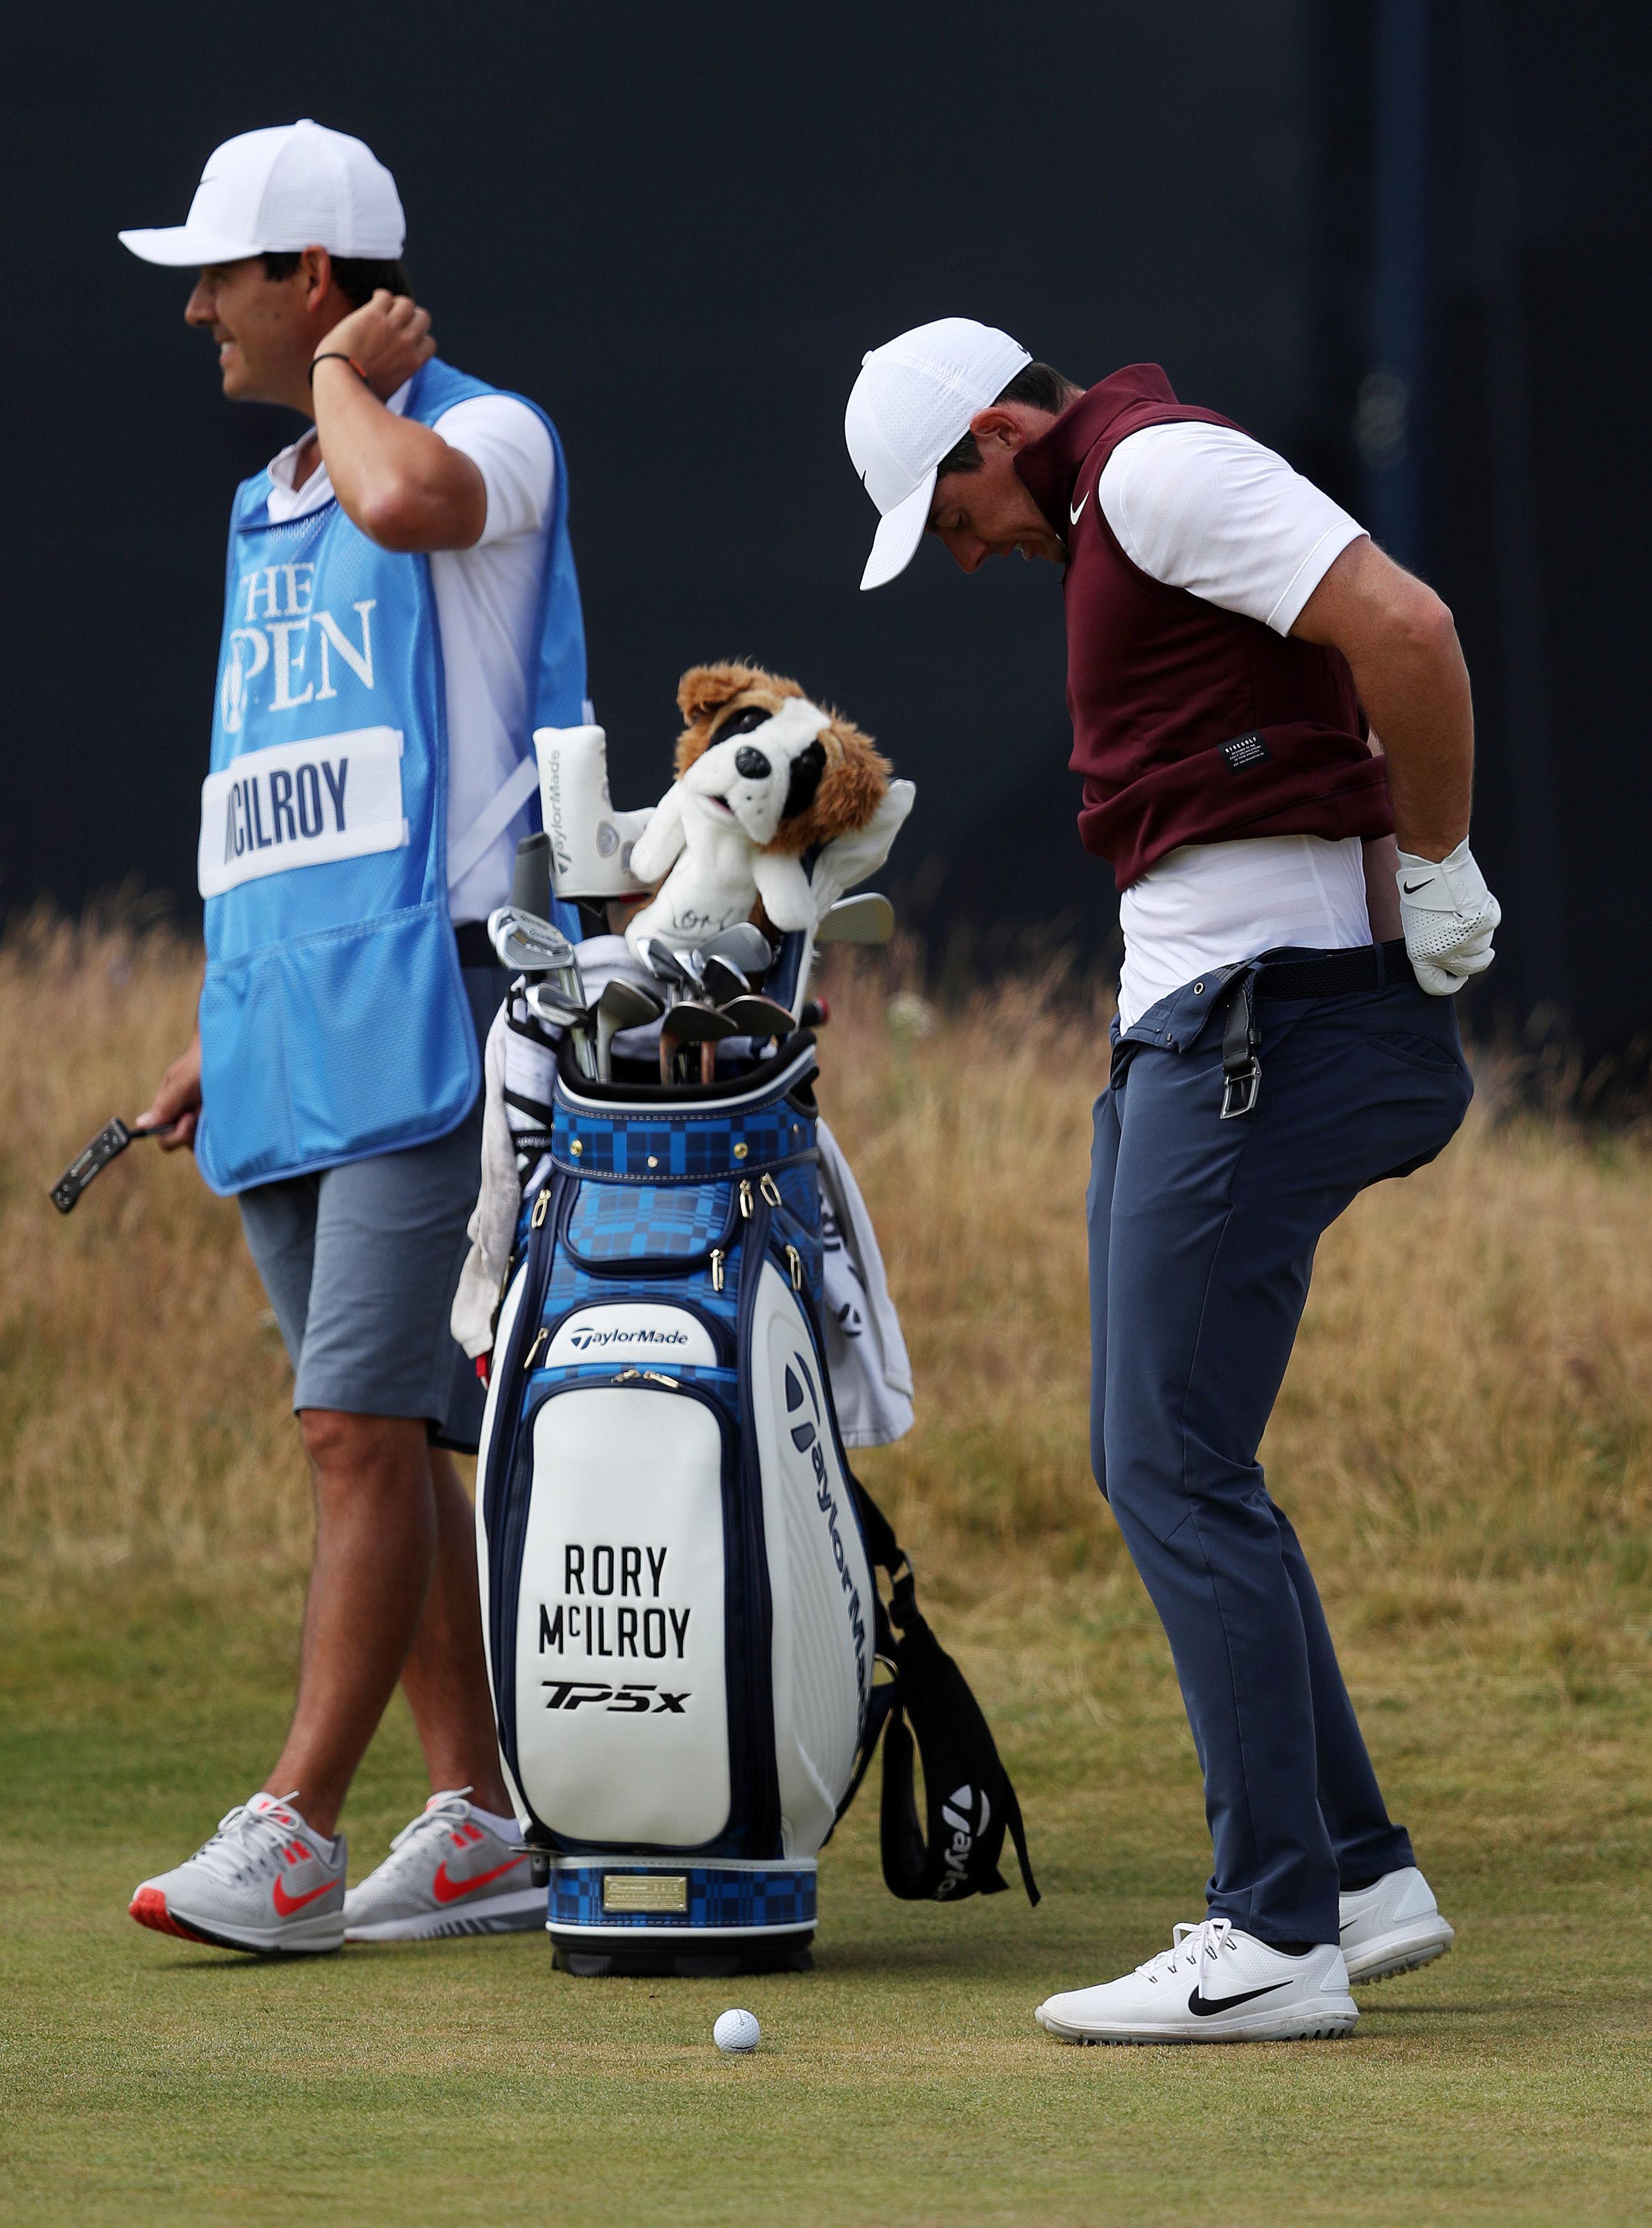 But while he looked for his ball on the floor, Rory McIlroy decided he would check out his attire